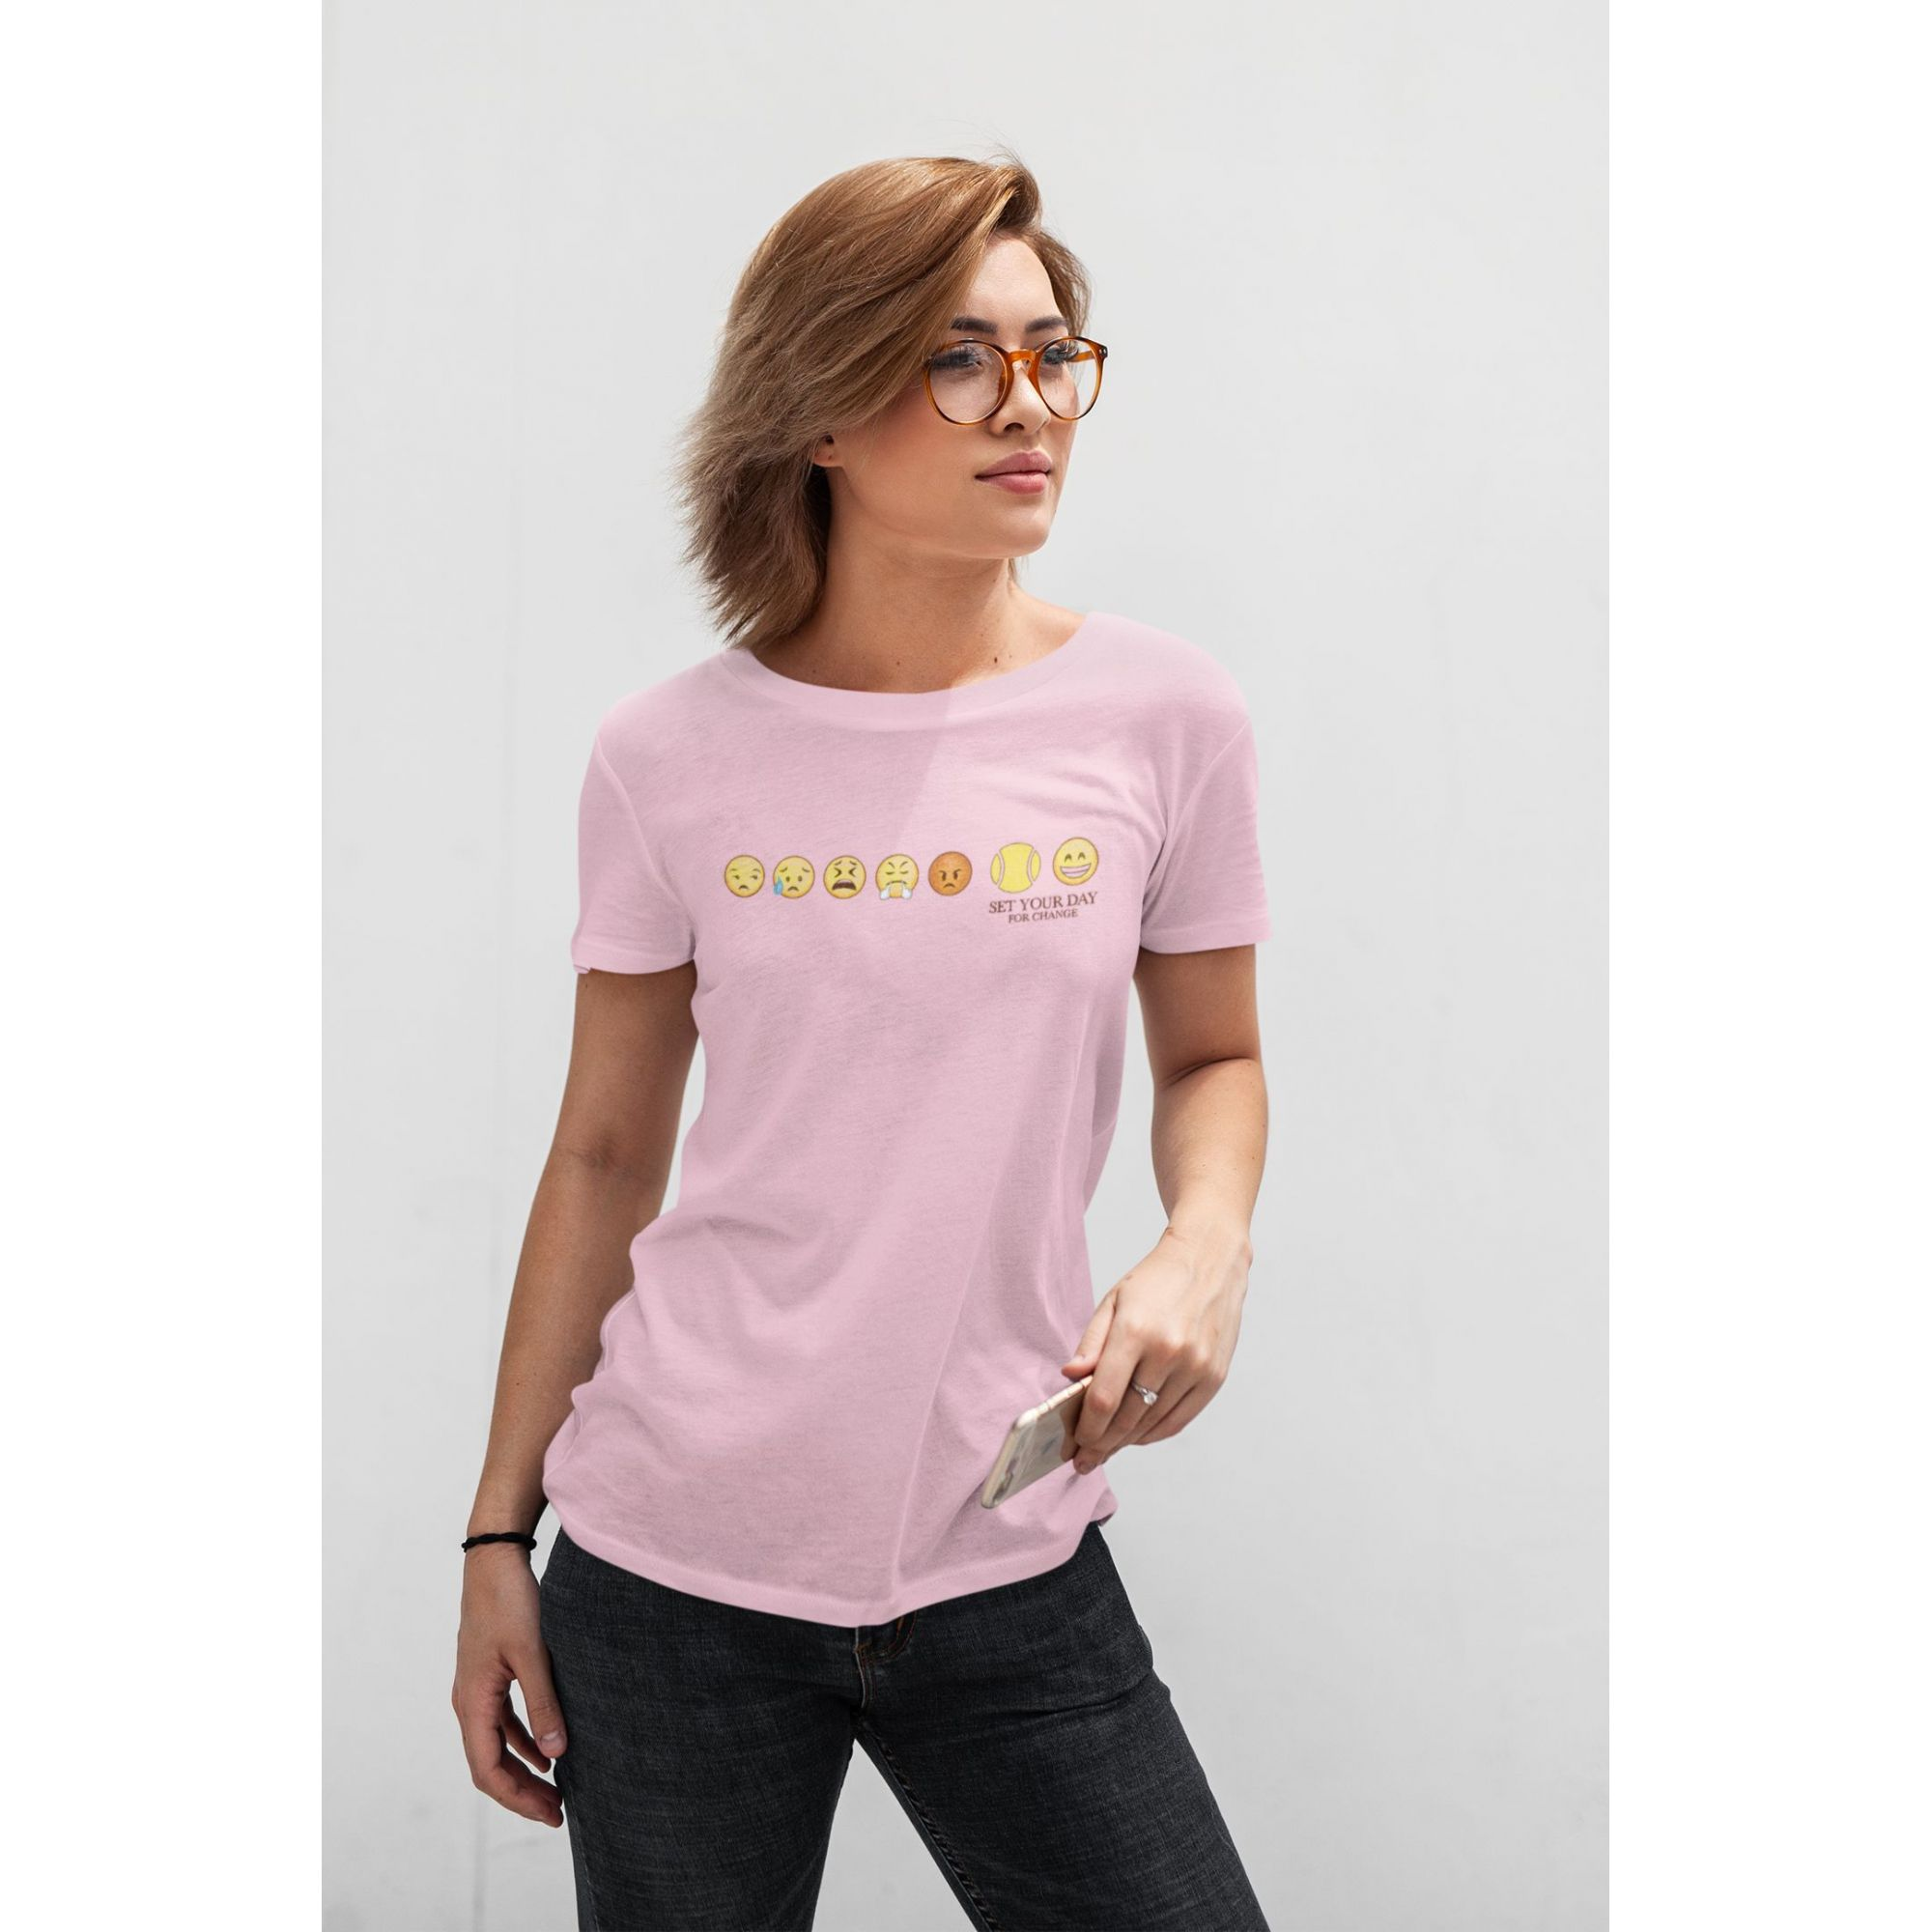 Camiseta SET YOUR DAY - FOR CHANGE >> Coleção 2019 >> FEMININA